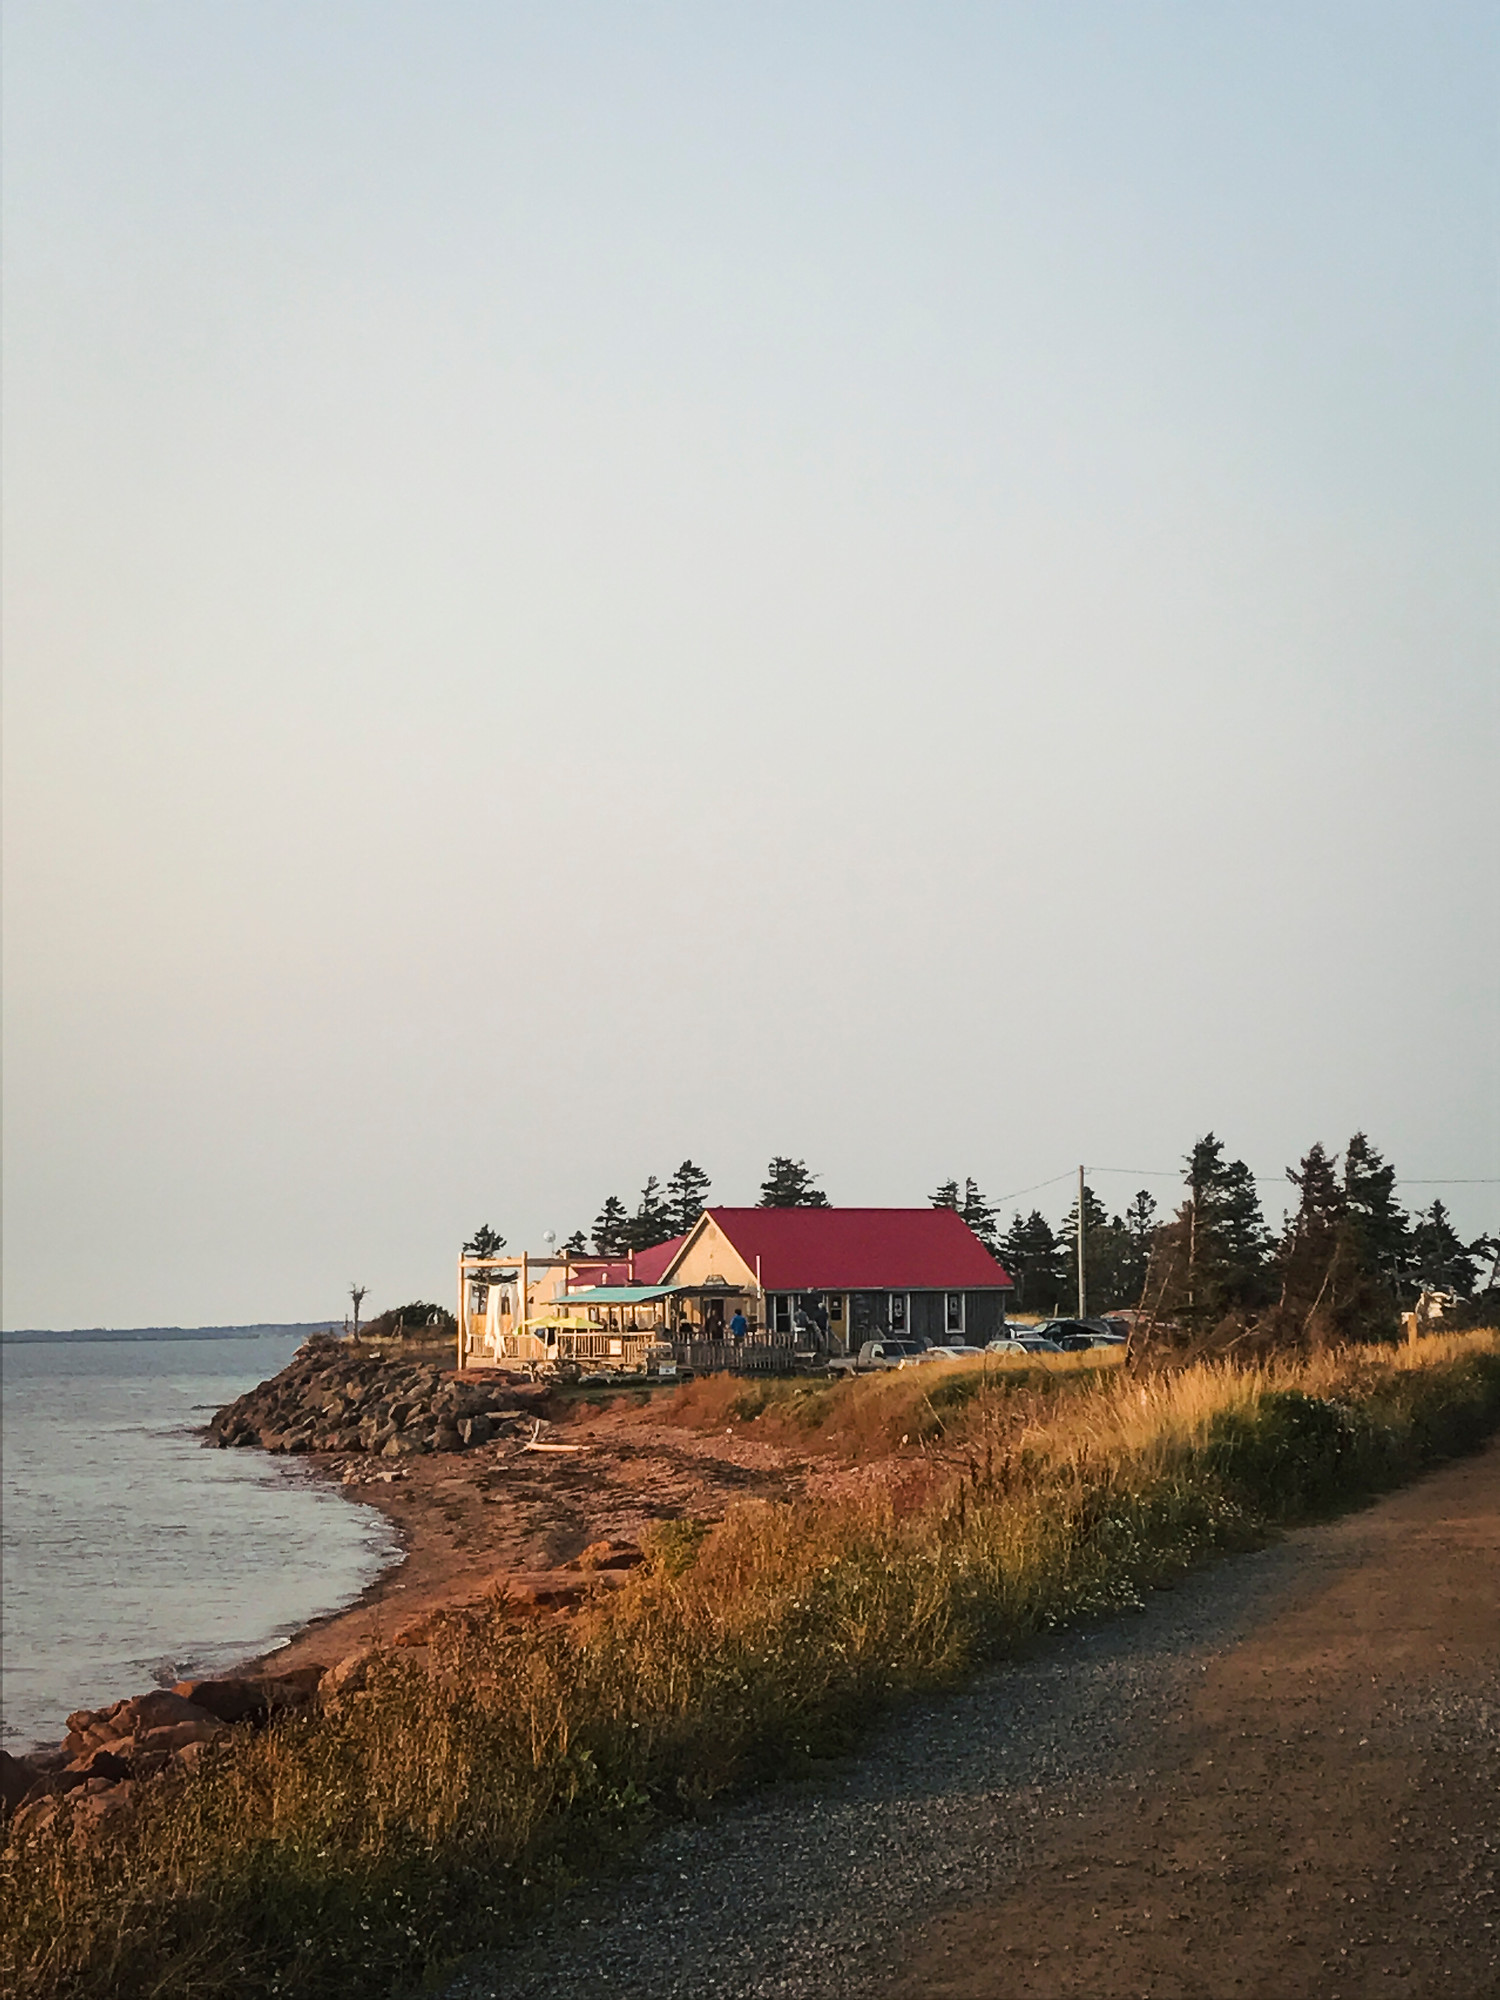 Where to eat in PEI: Point Prim Chowder House has the best chowder on Prince Edward Island.